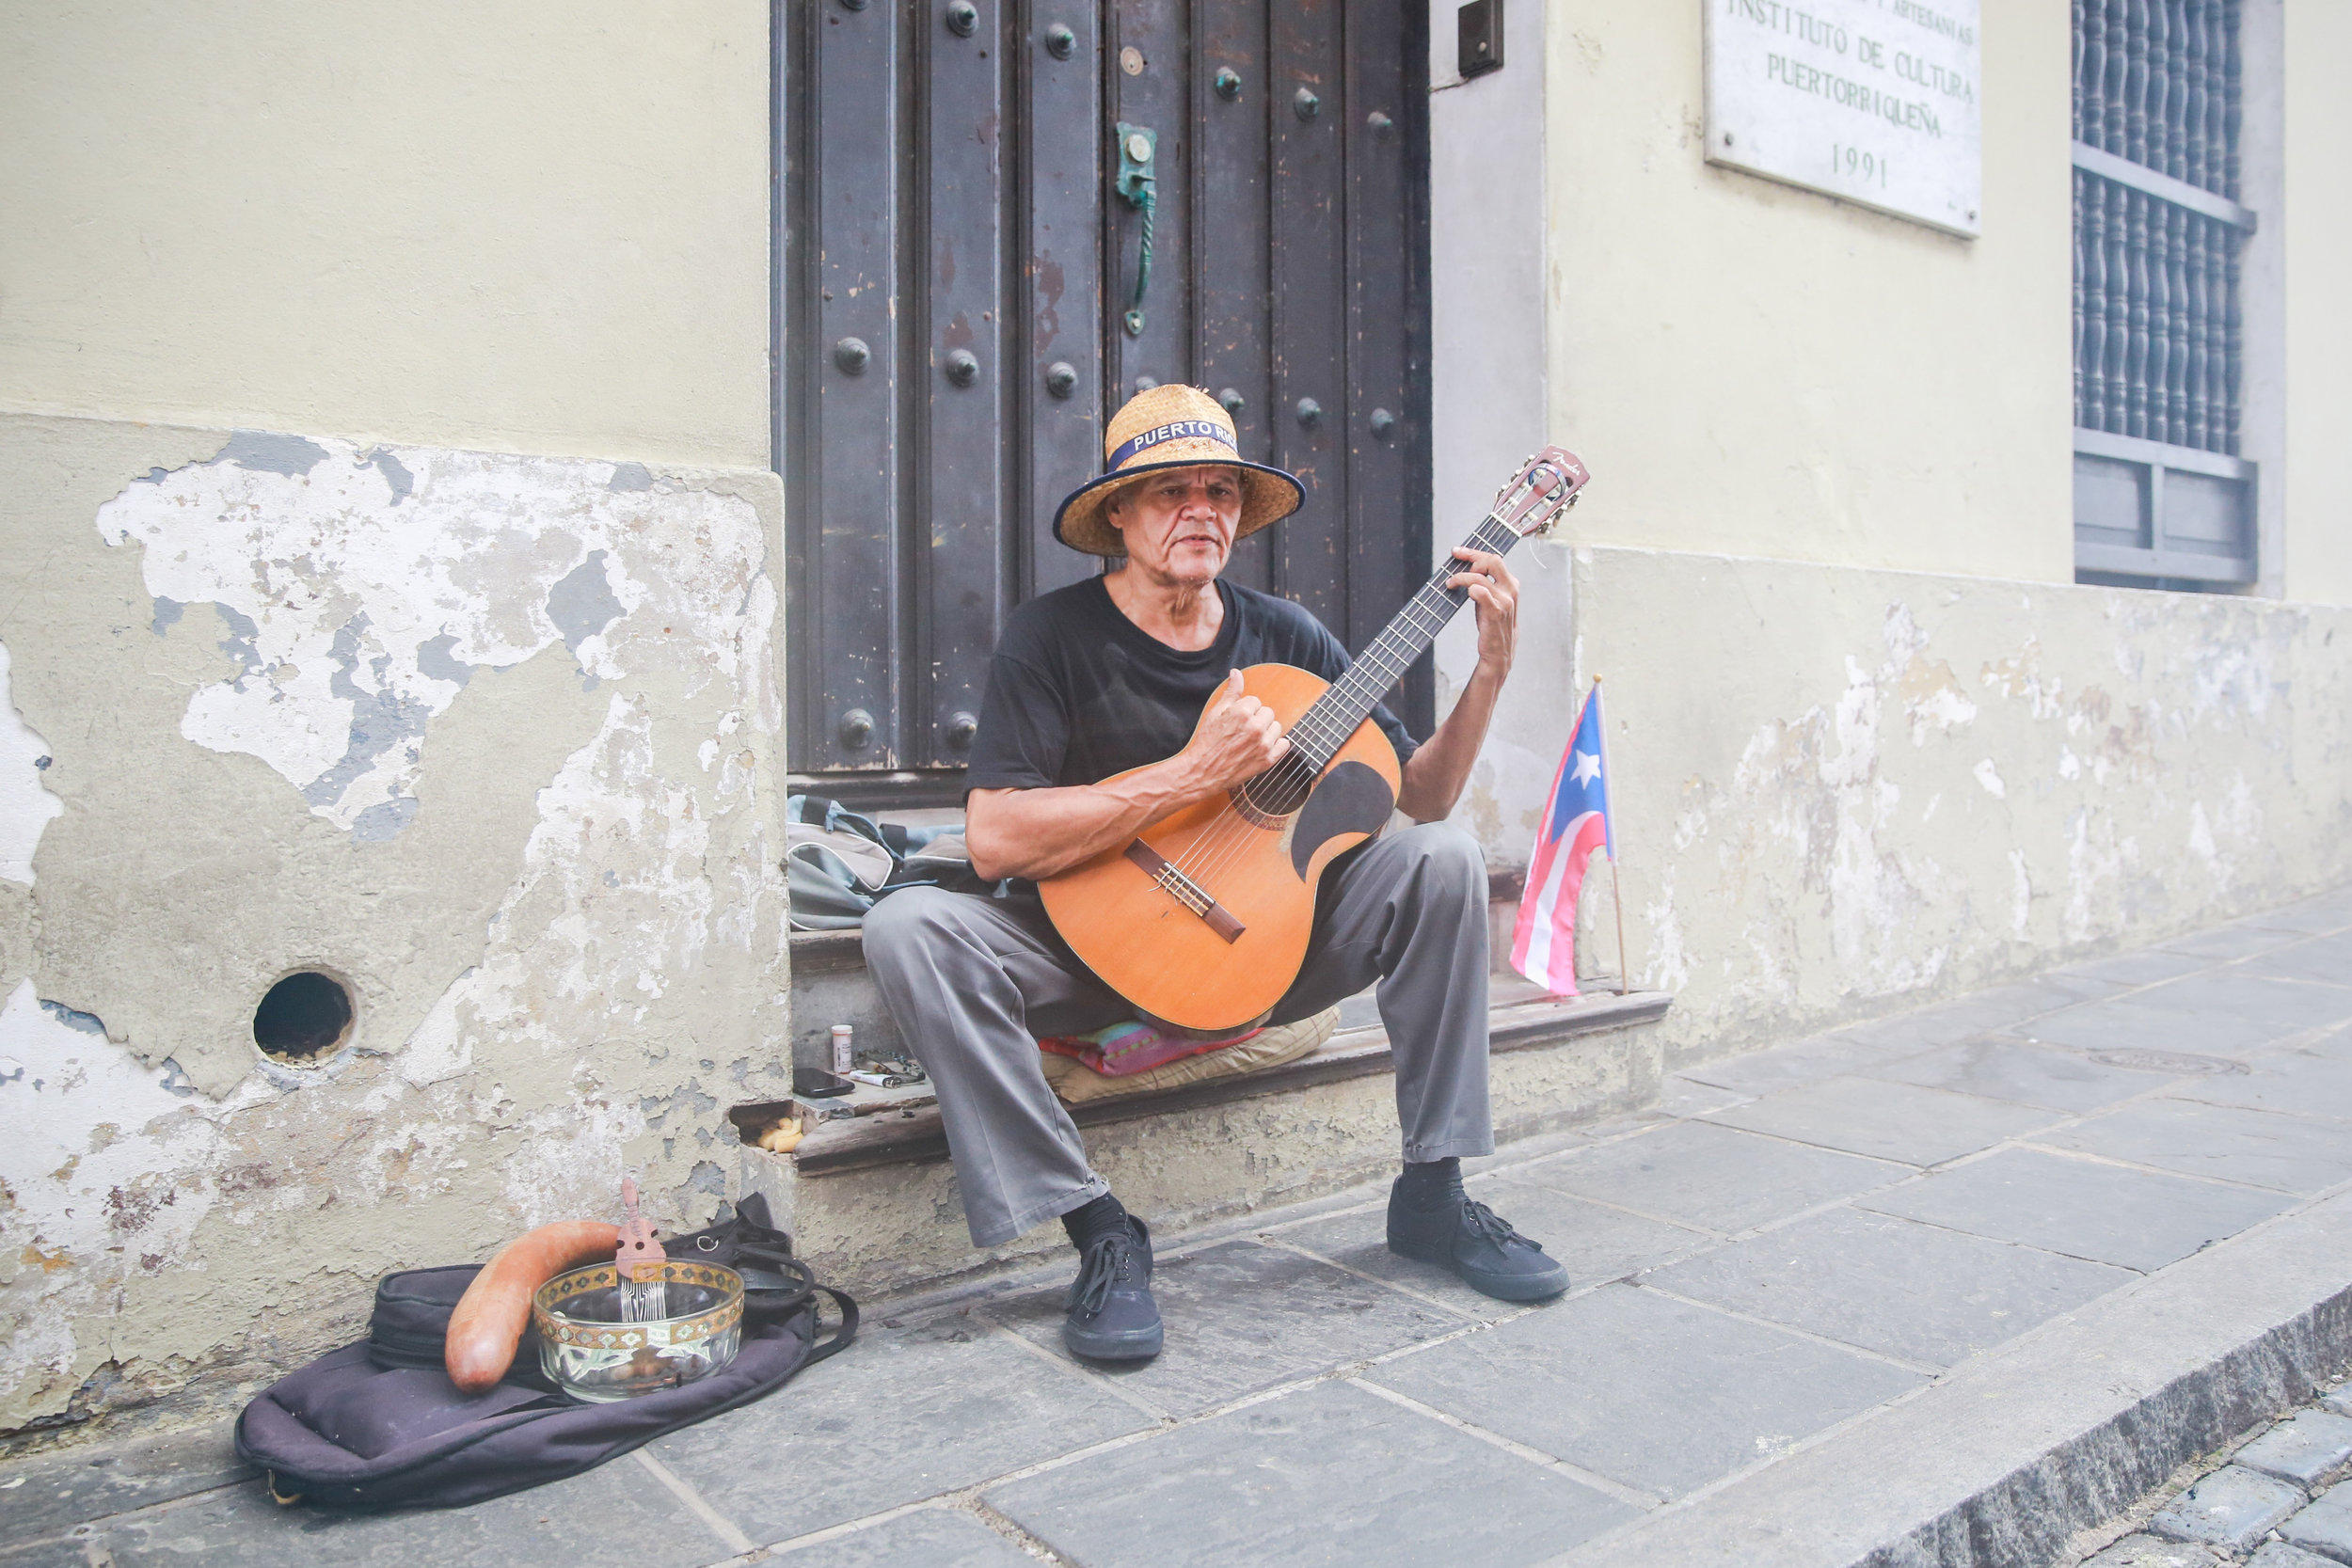 We sat outside on the street here eating Acai Bowls and listening tho this guy sing. I couldn't peel my eyes away, there was something so beautiful about his voice.